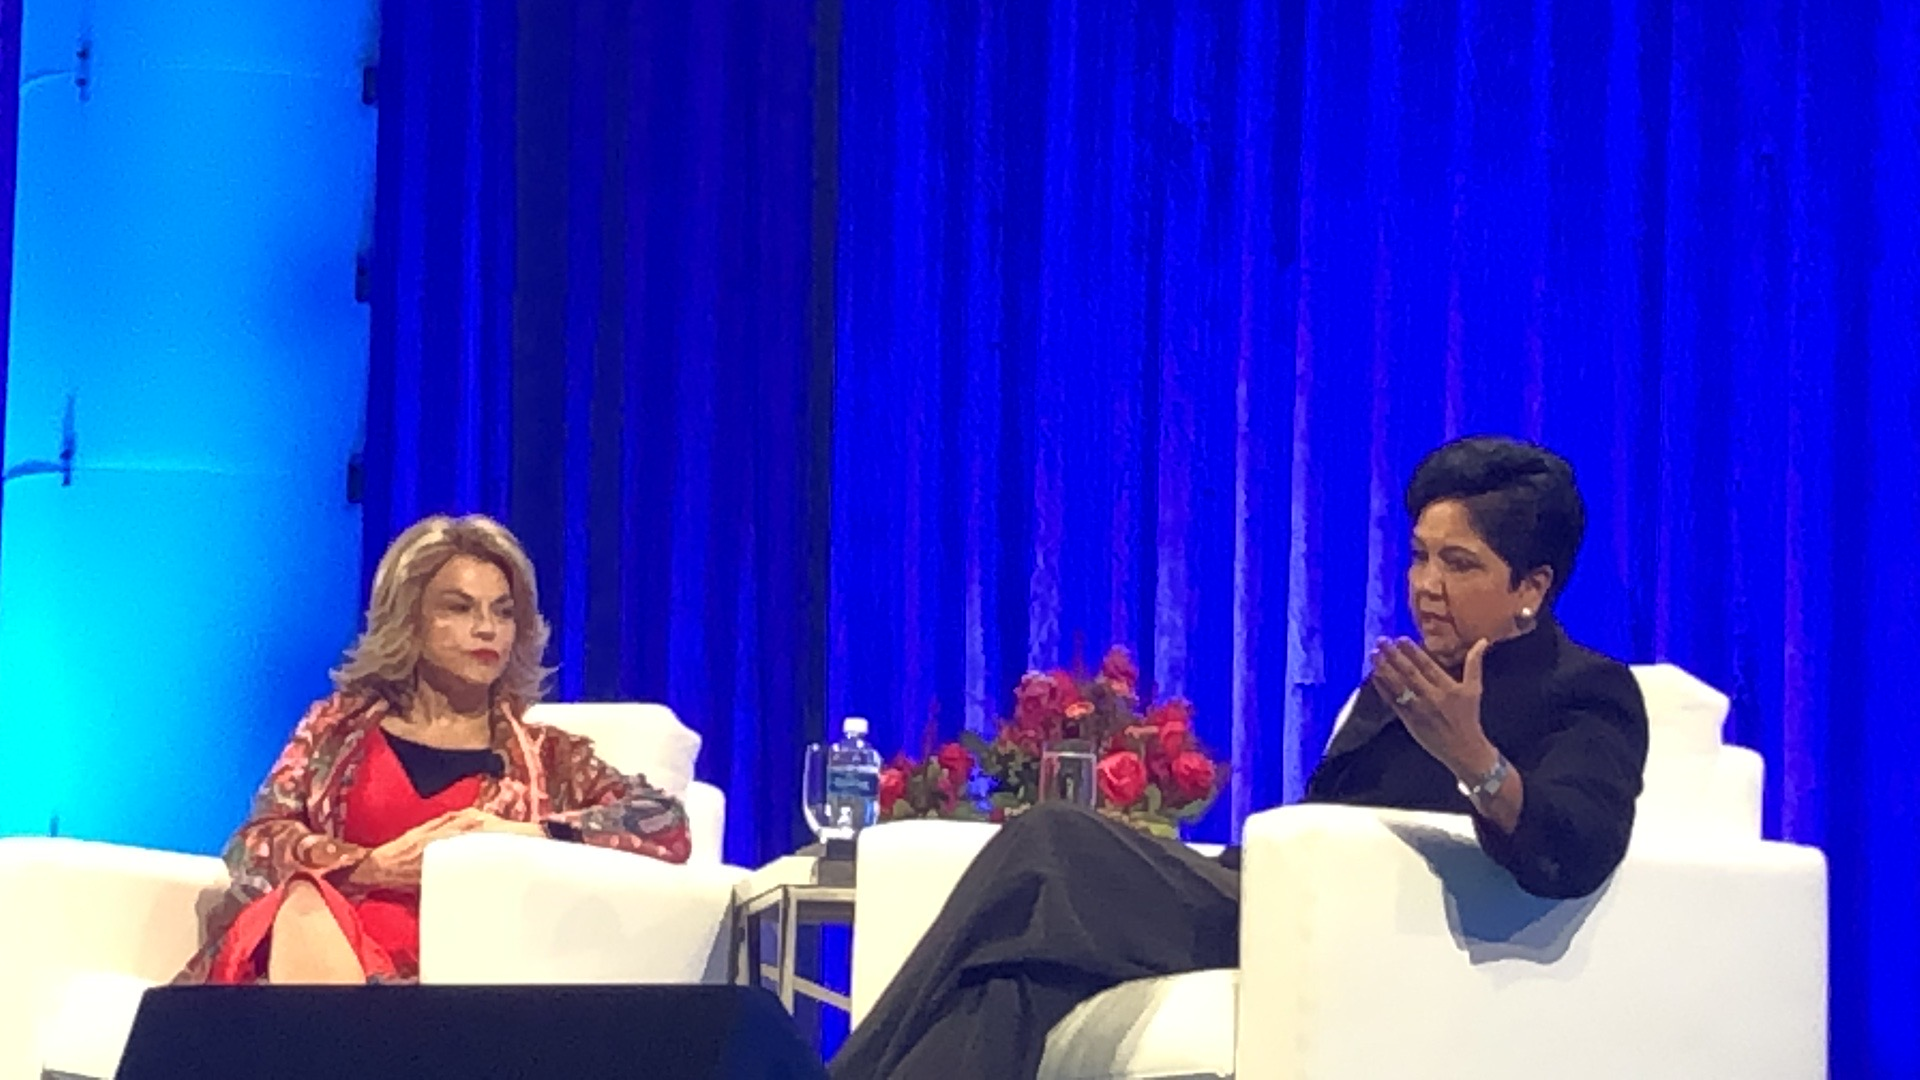 Former PepsiCo chair and CEO Indra Nooyi speaks with Pat Mitchell at the Watermark Conference